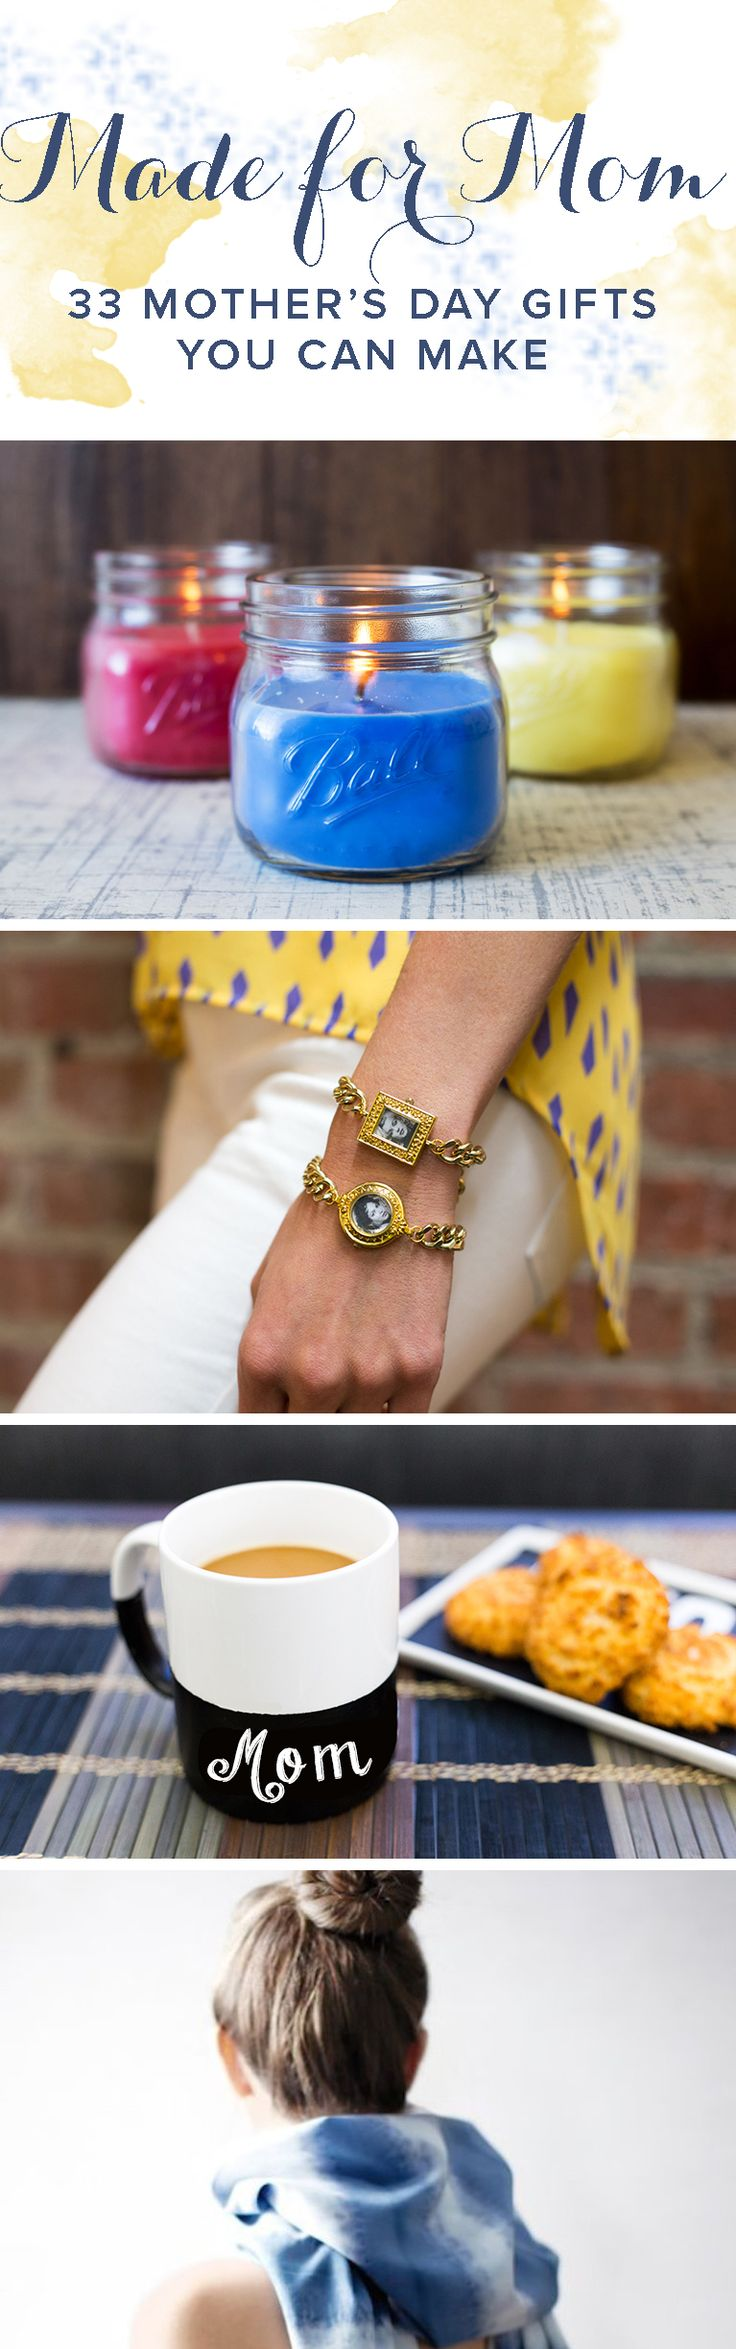 33 Gifts You Can Make for Mom - Mothers Day Gift Ideas